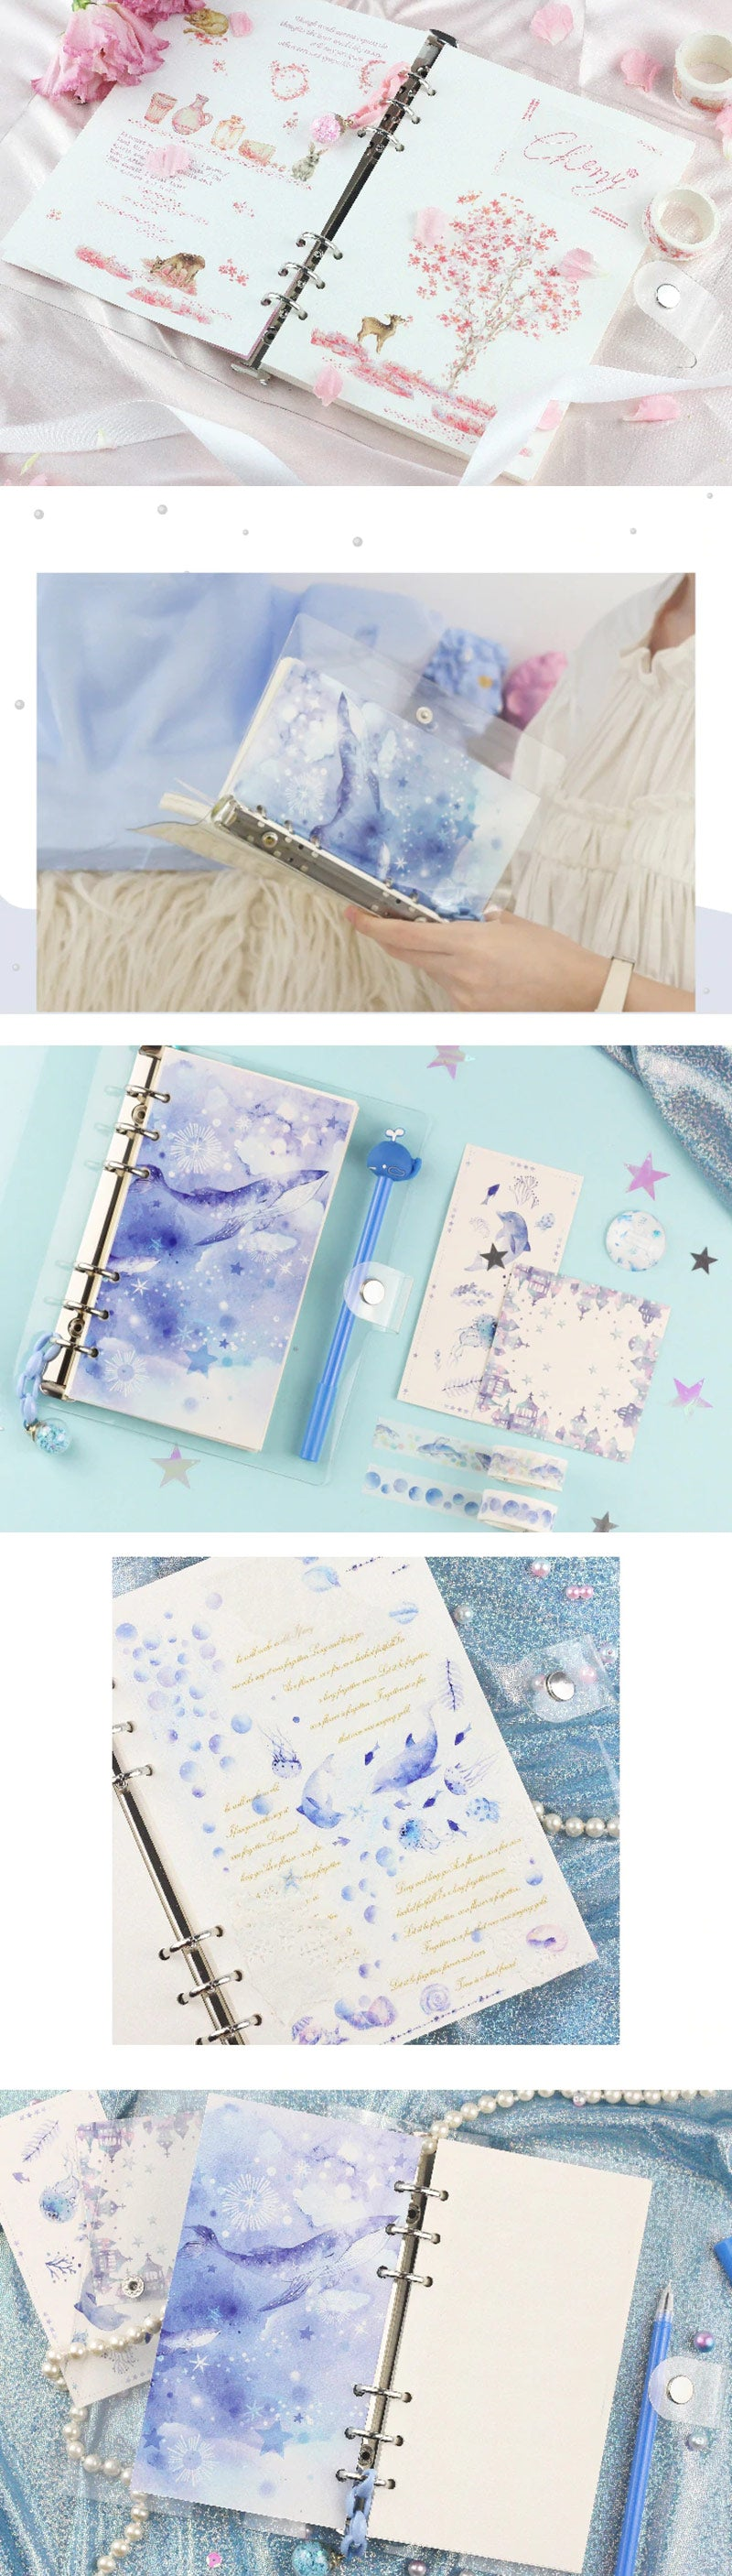 Unicorn Loose Leaf Notebook Binder Set - Detail